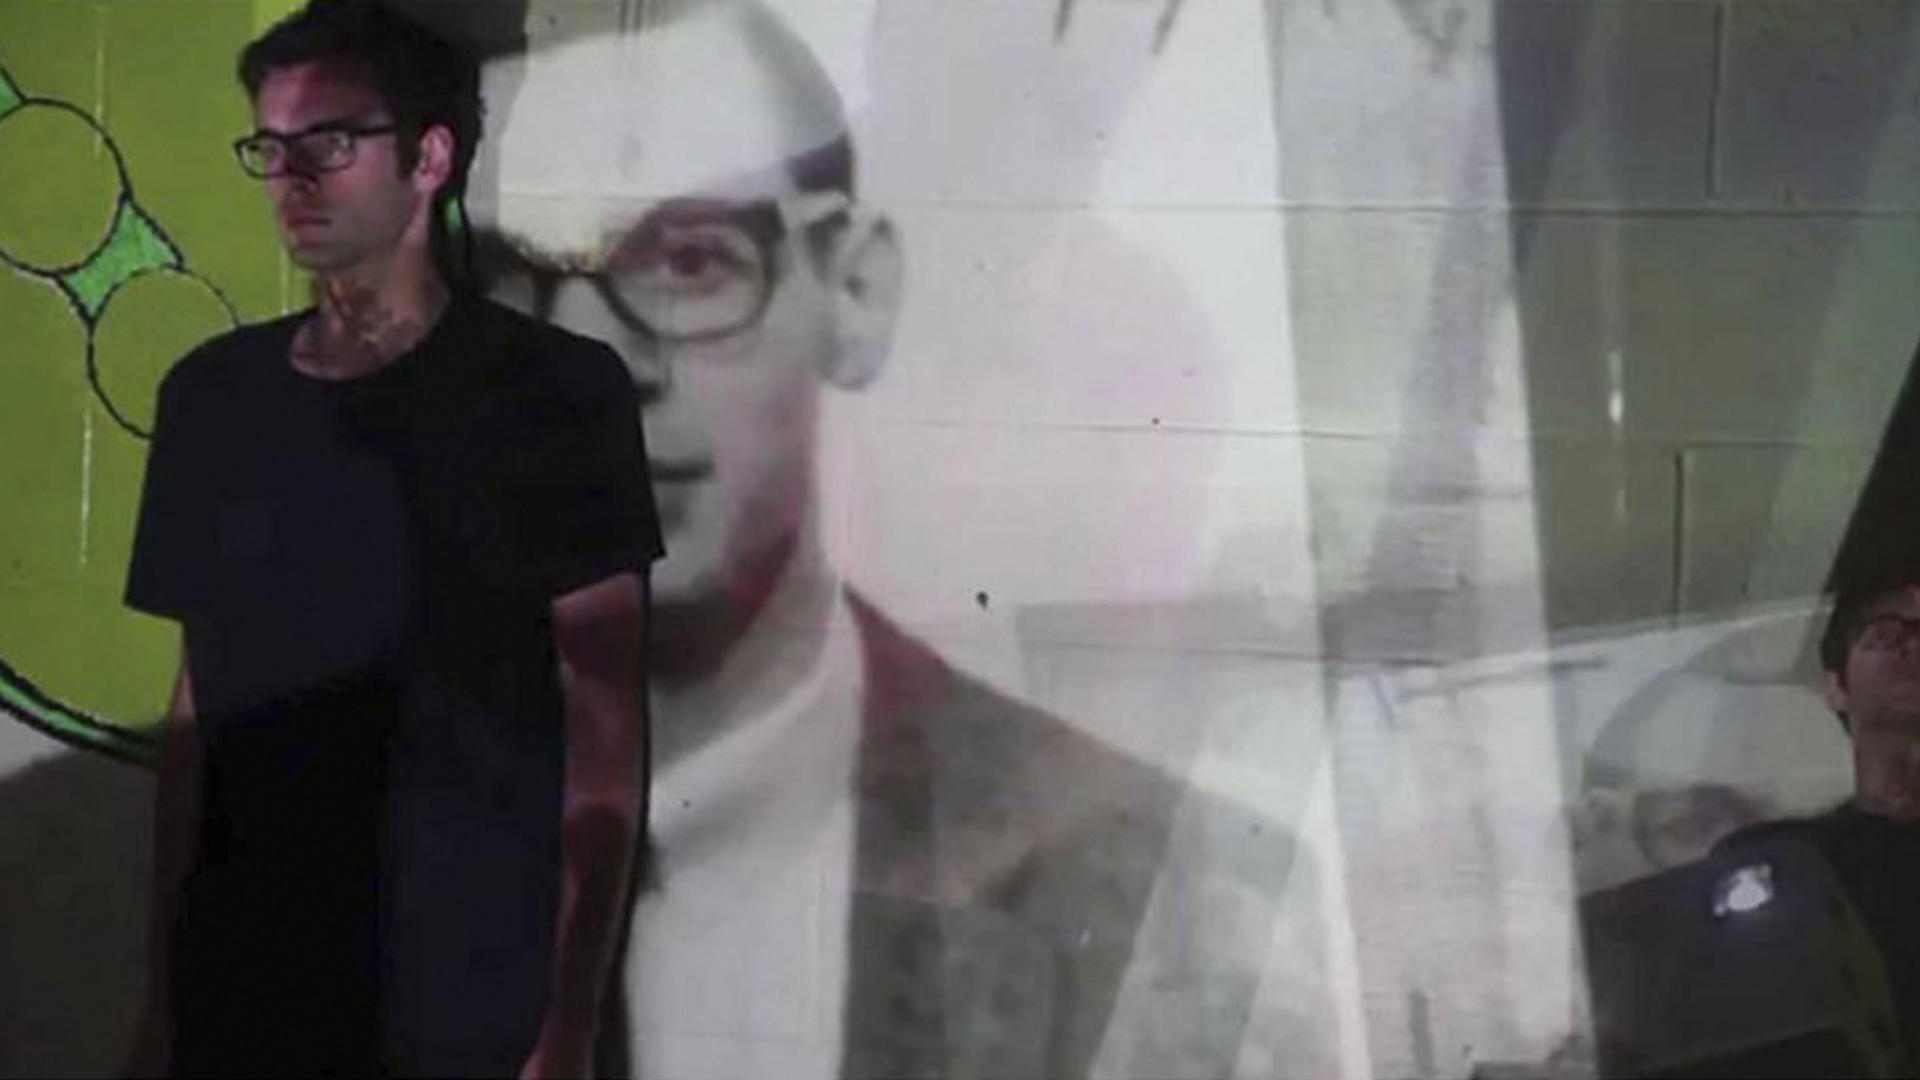 A young male student stands in the projections of a larger black and white portrait of himself.